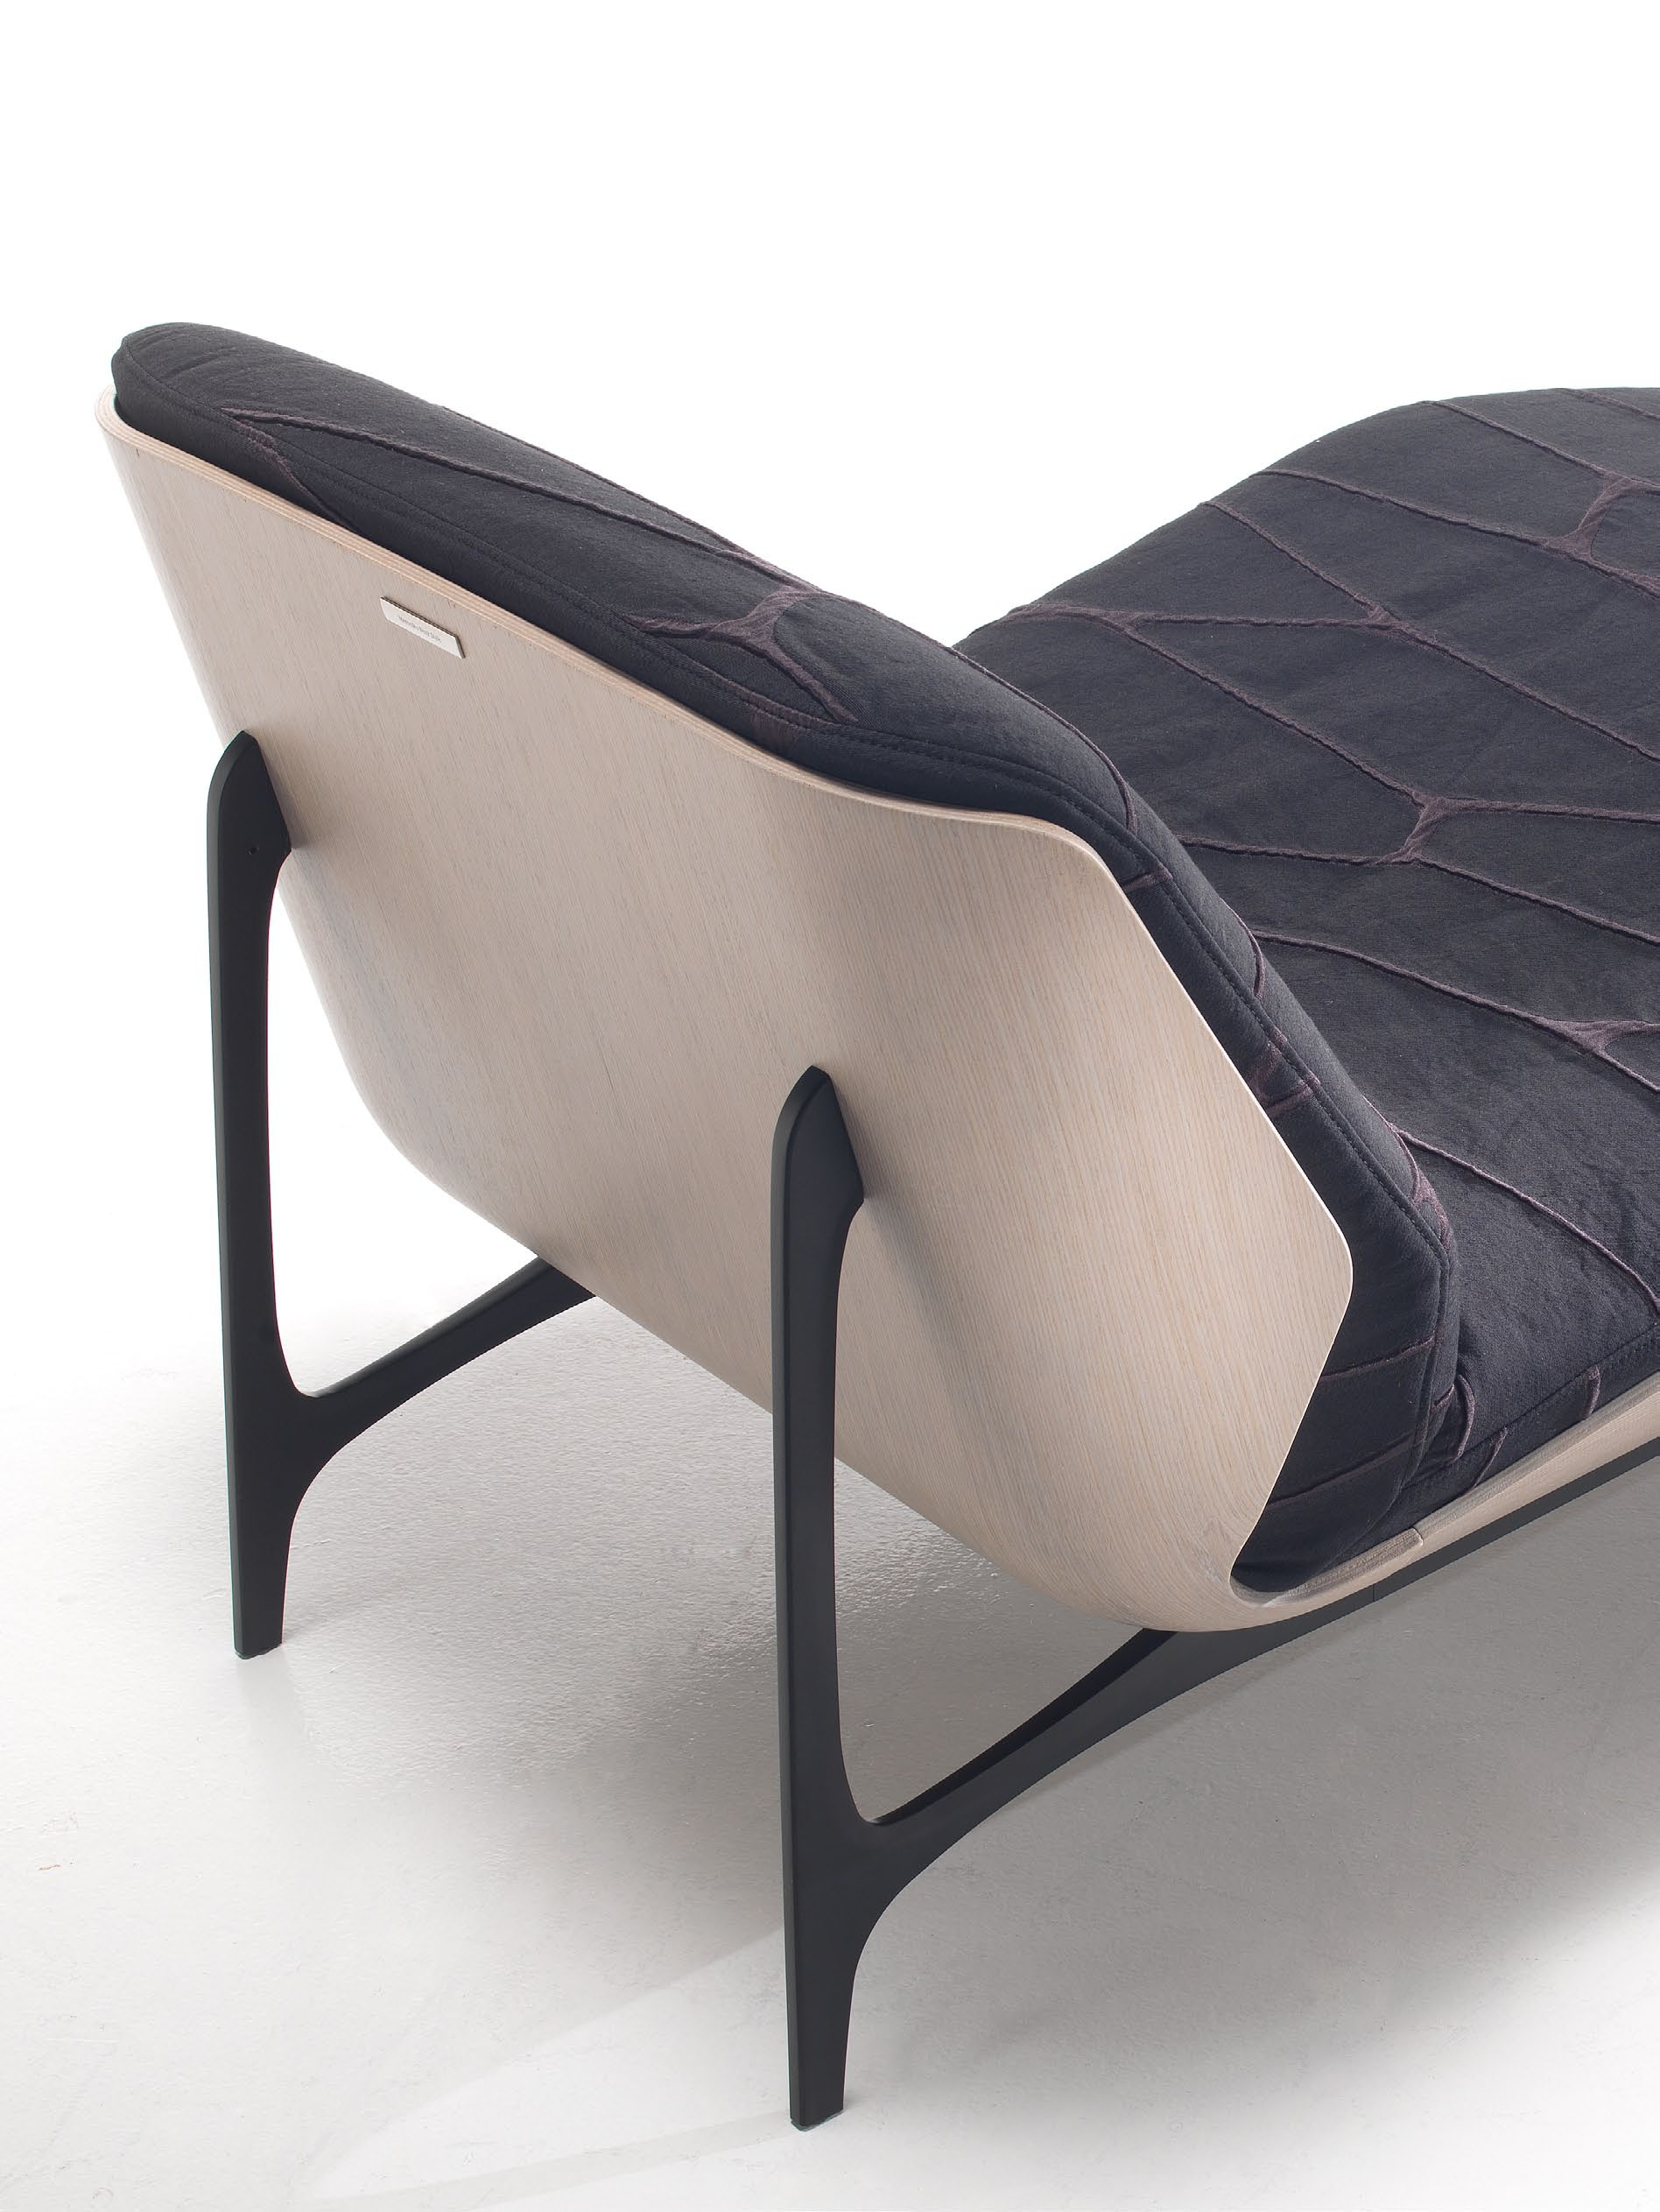 Mbs 006 Chaise Lounge With Metal Legs Wooden Frame